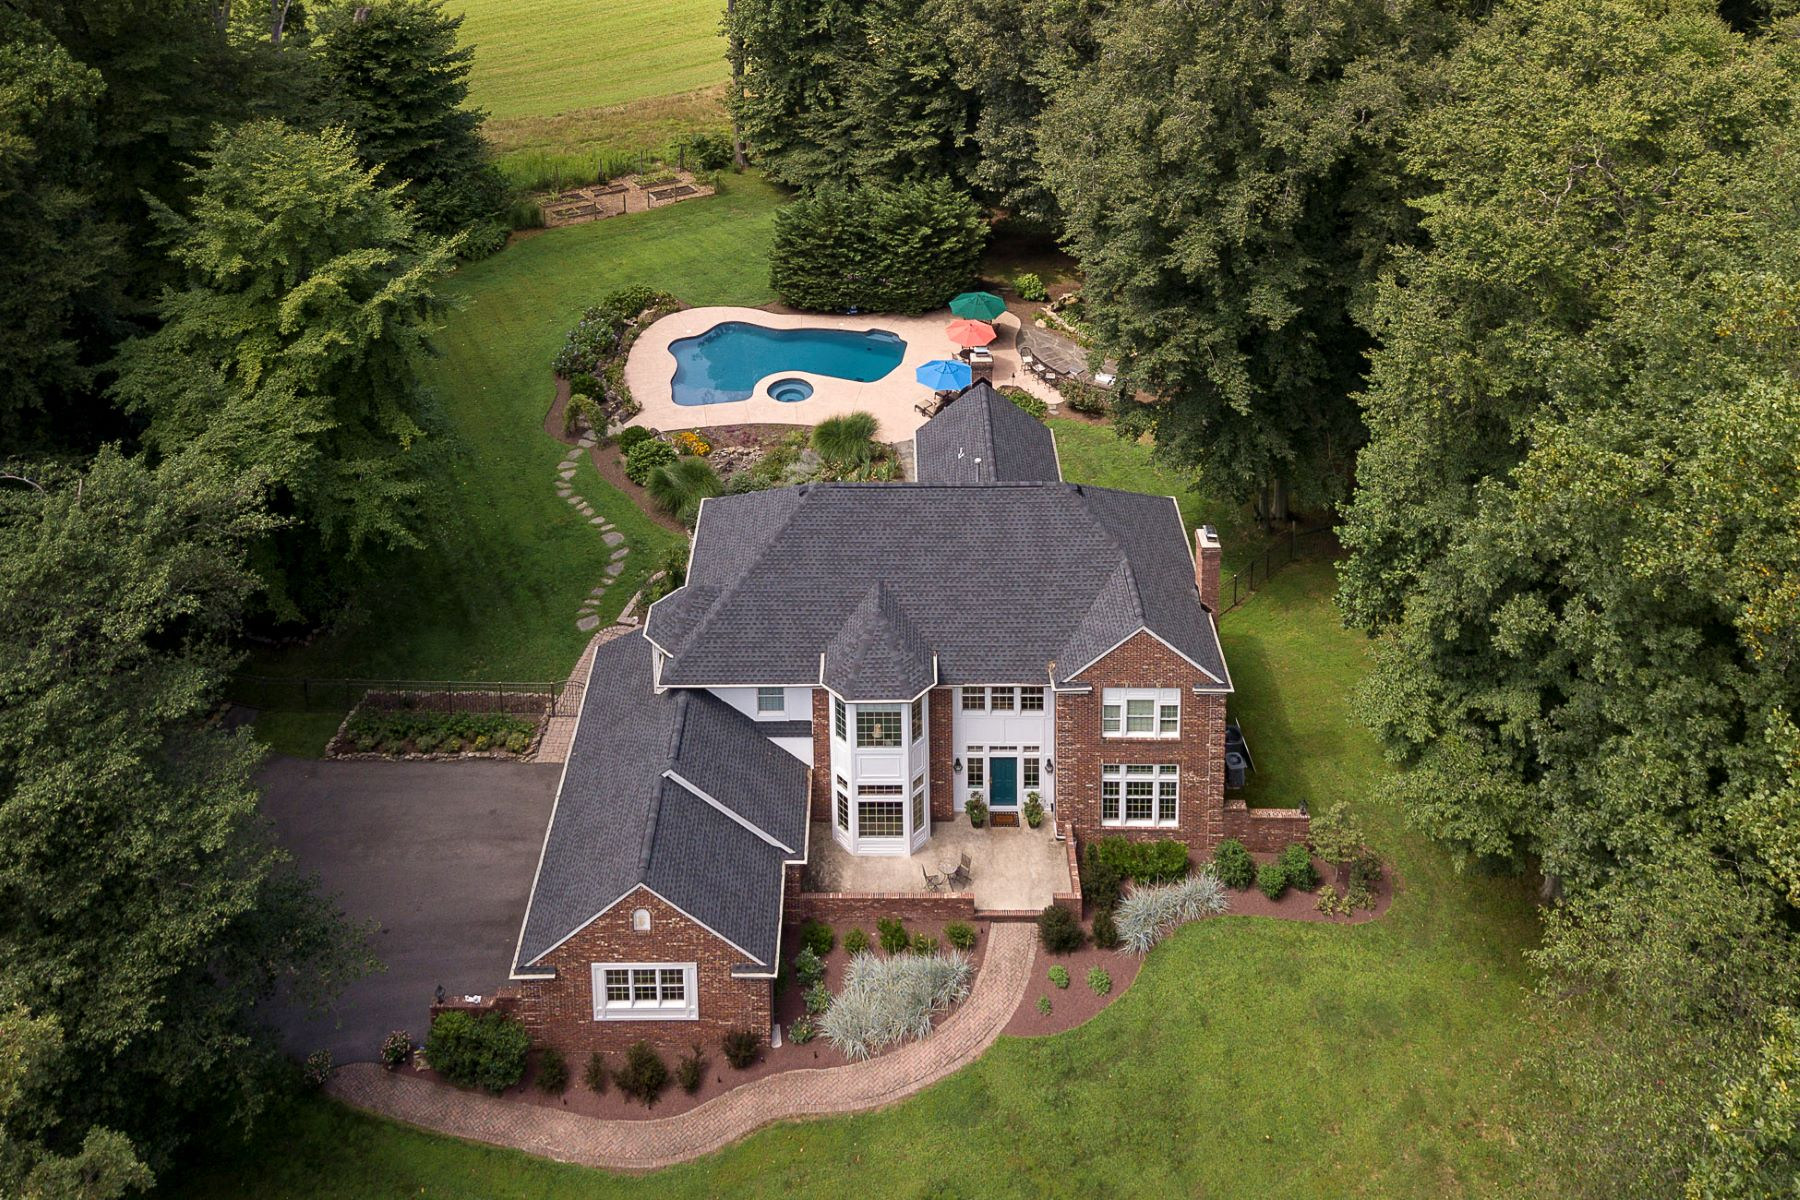 Single Family Homes للـ Sale في Spectacular Scenery Surrounds This Custom Home 6 Daniel Robbins Lane, Flemington, New Jersey 08822 United States